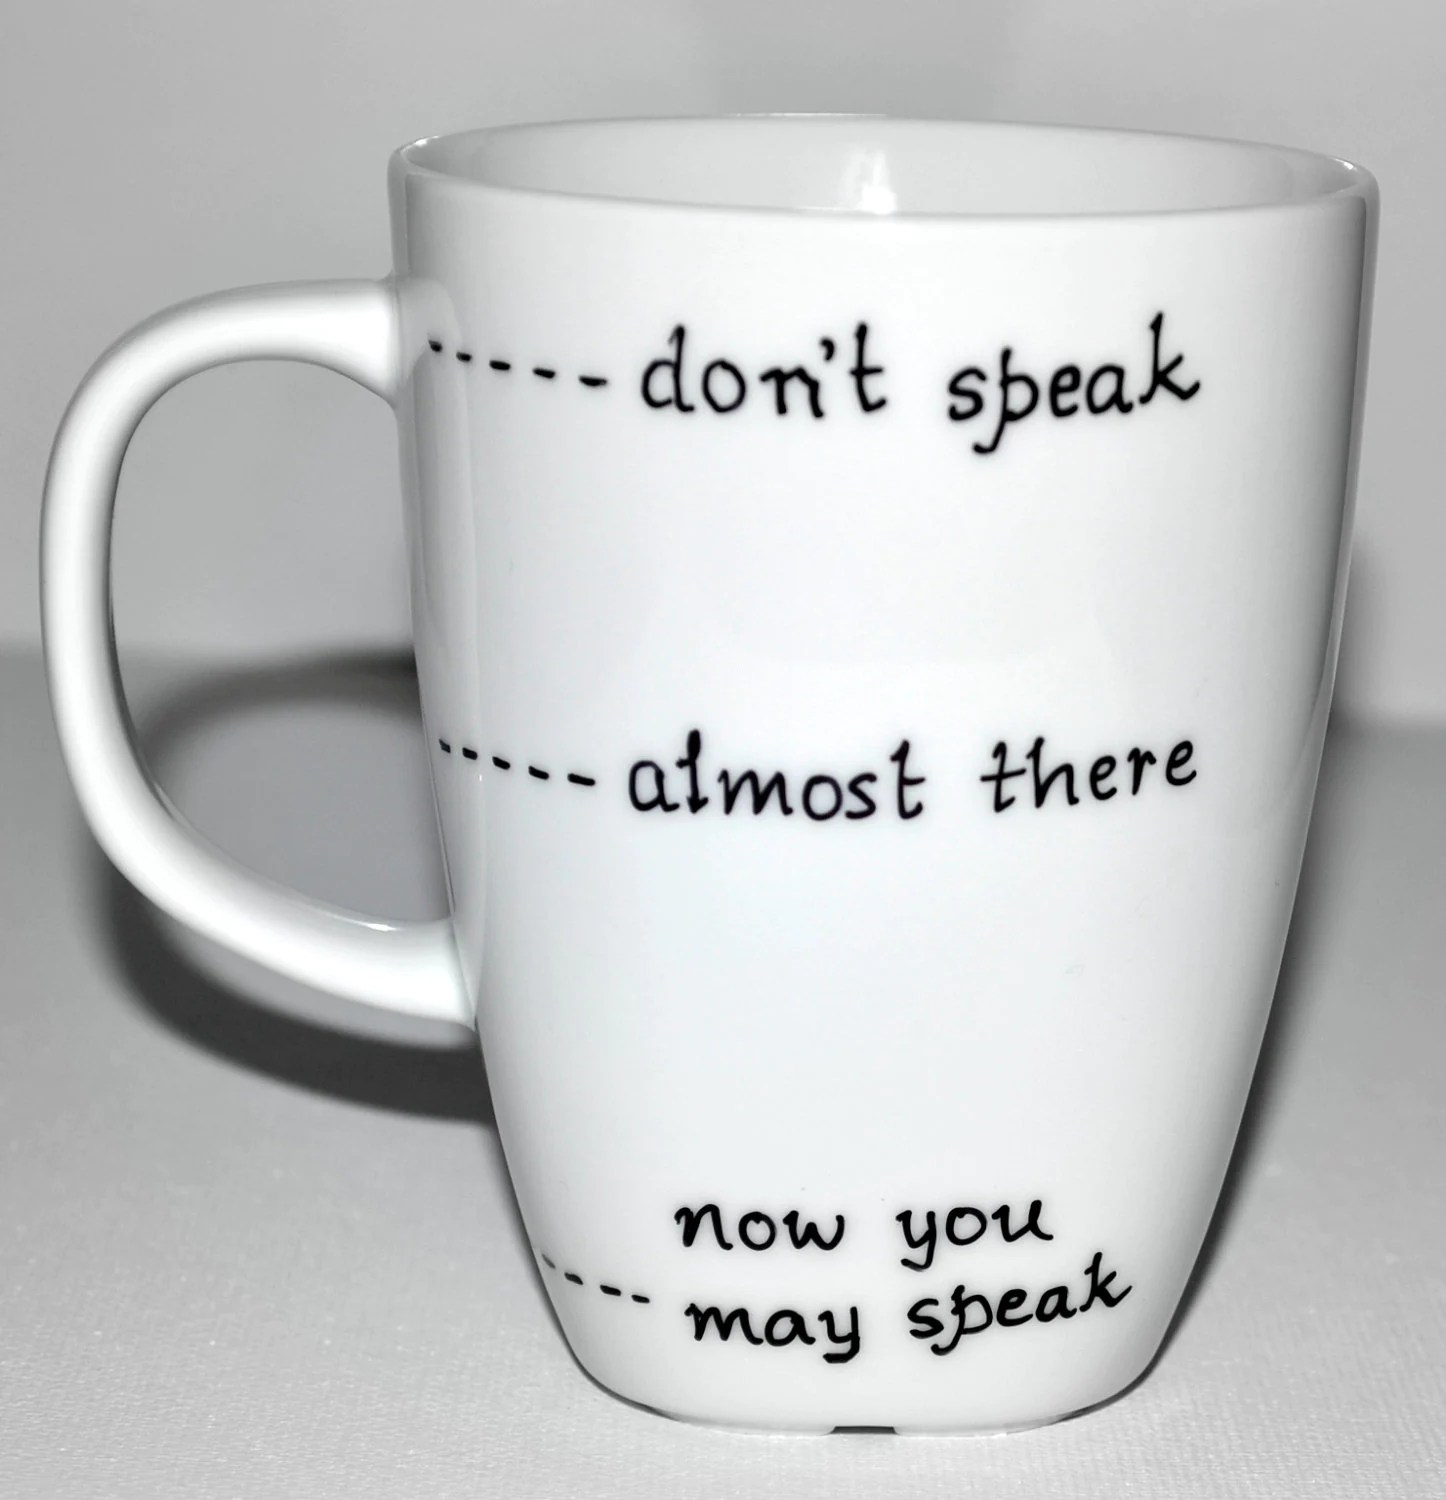 Design Koffiemok Funny Coffee Mug Don 39t Speak Almost There Now You May